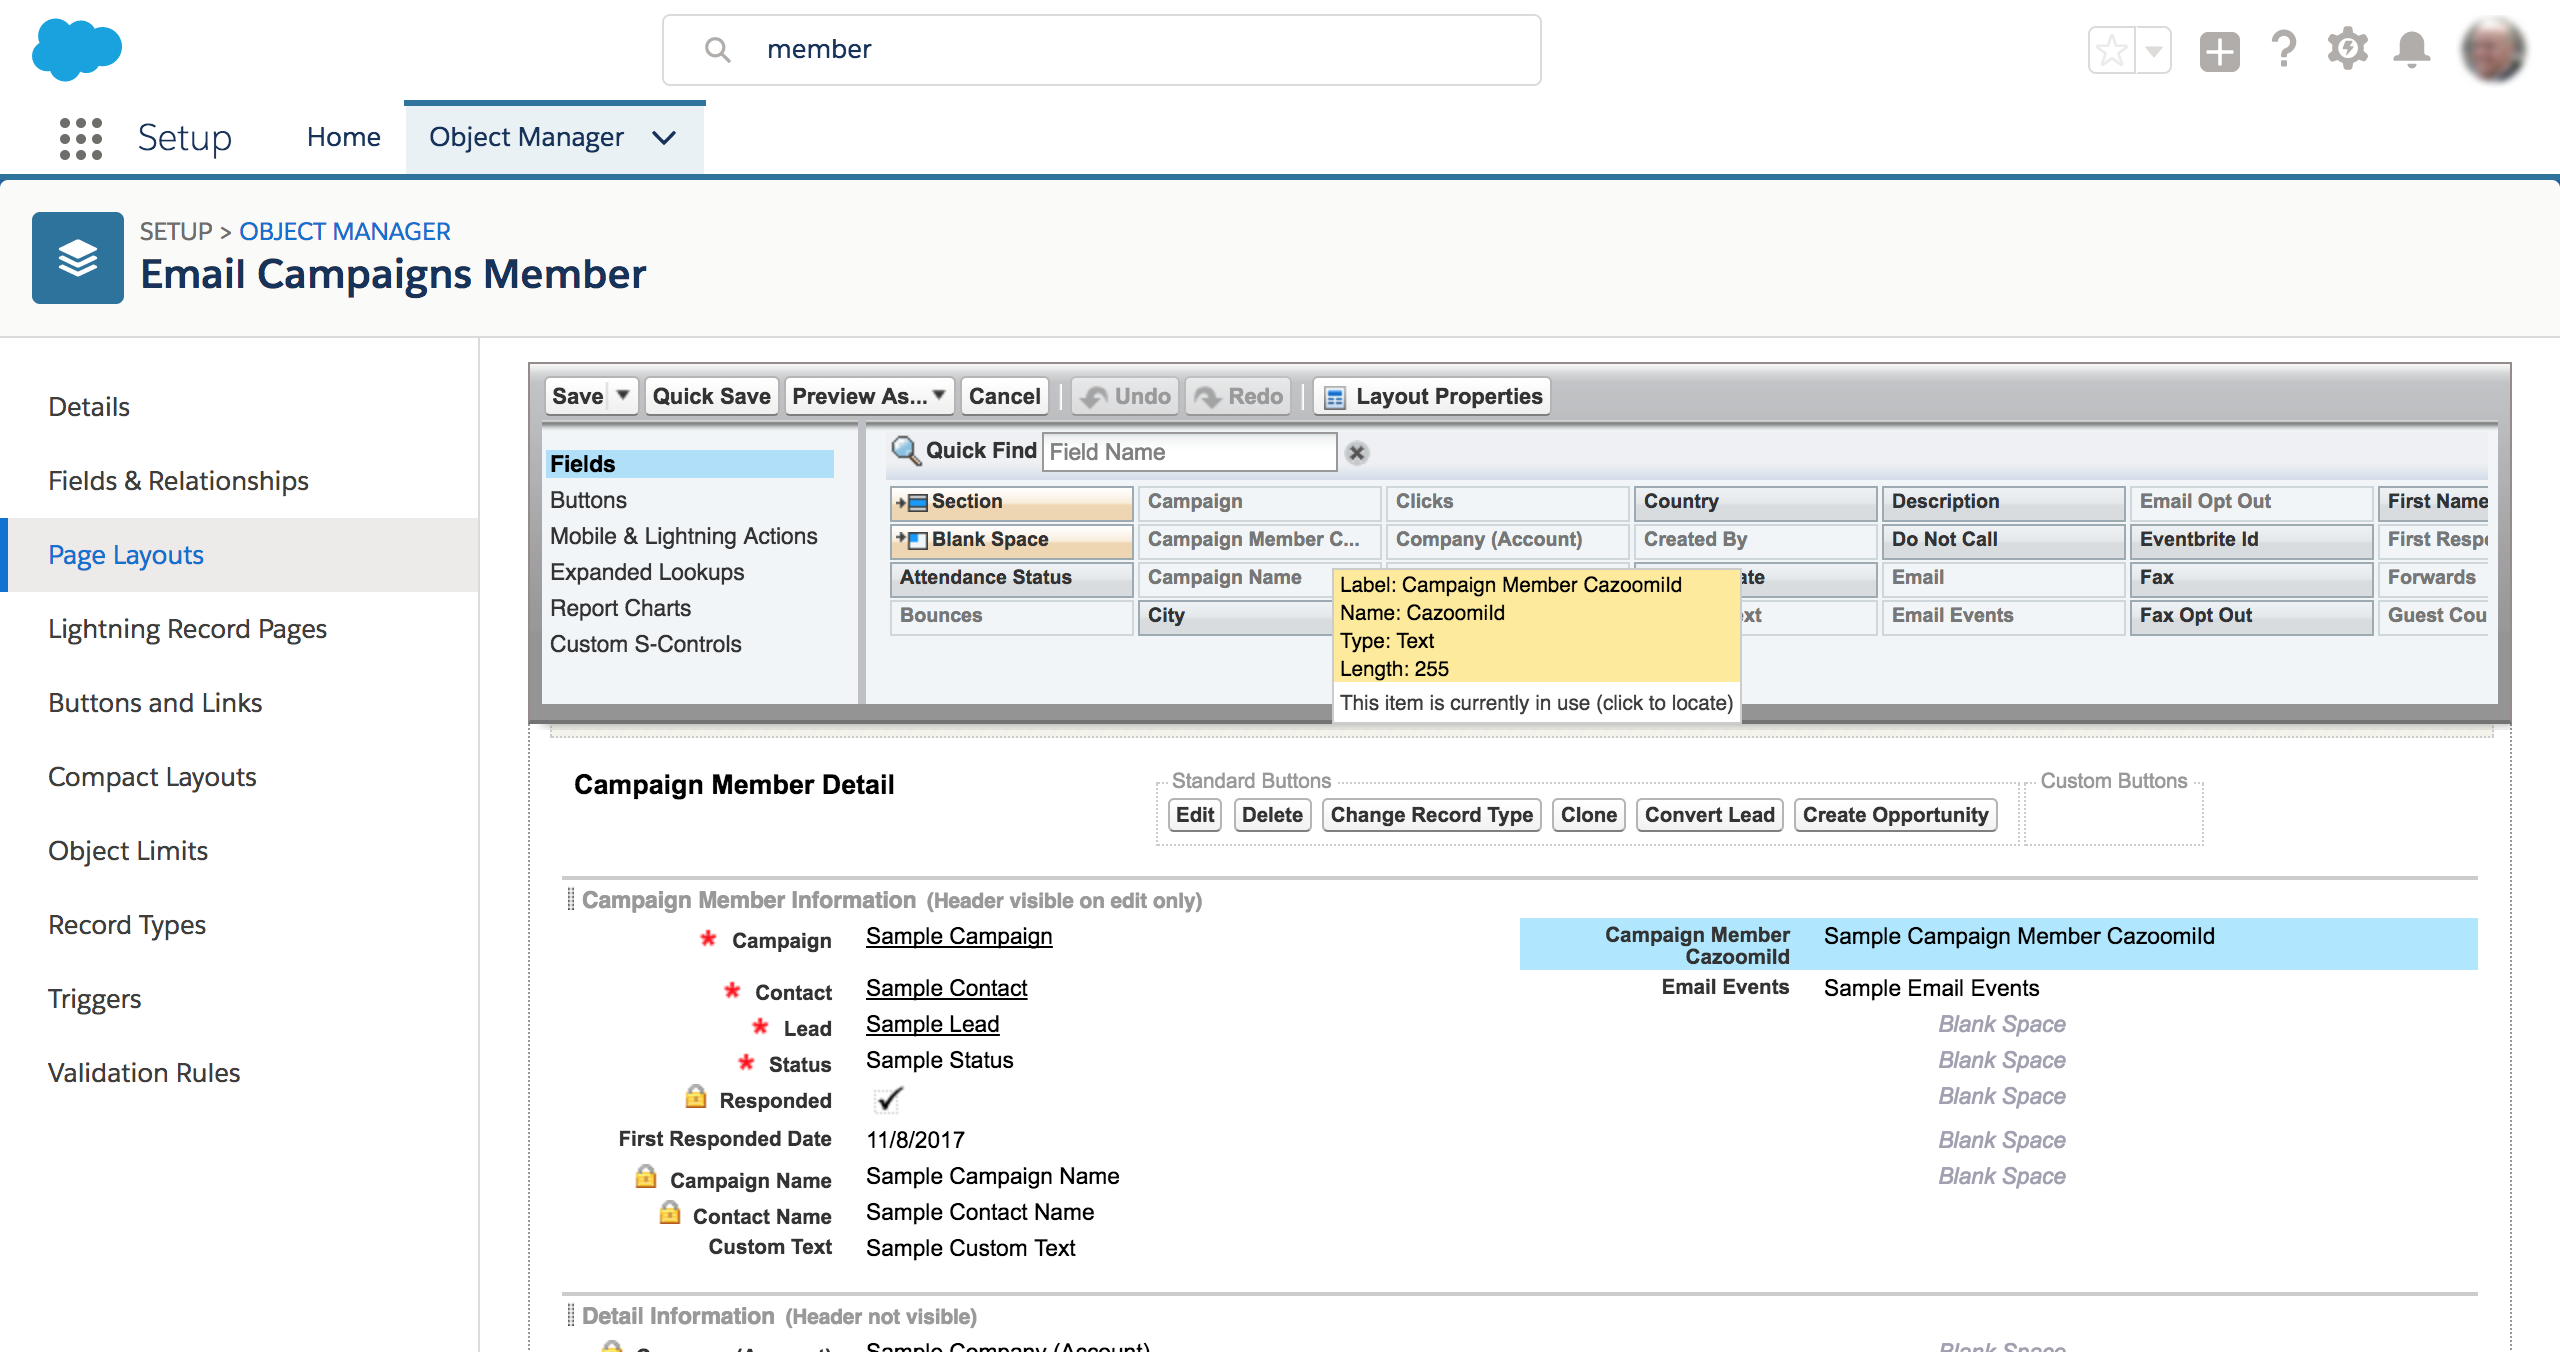 How to search in Salesforce | Salesforce Search